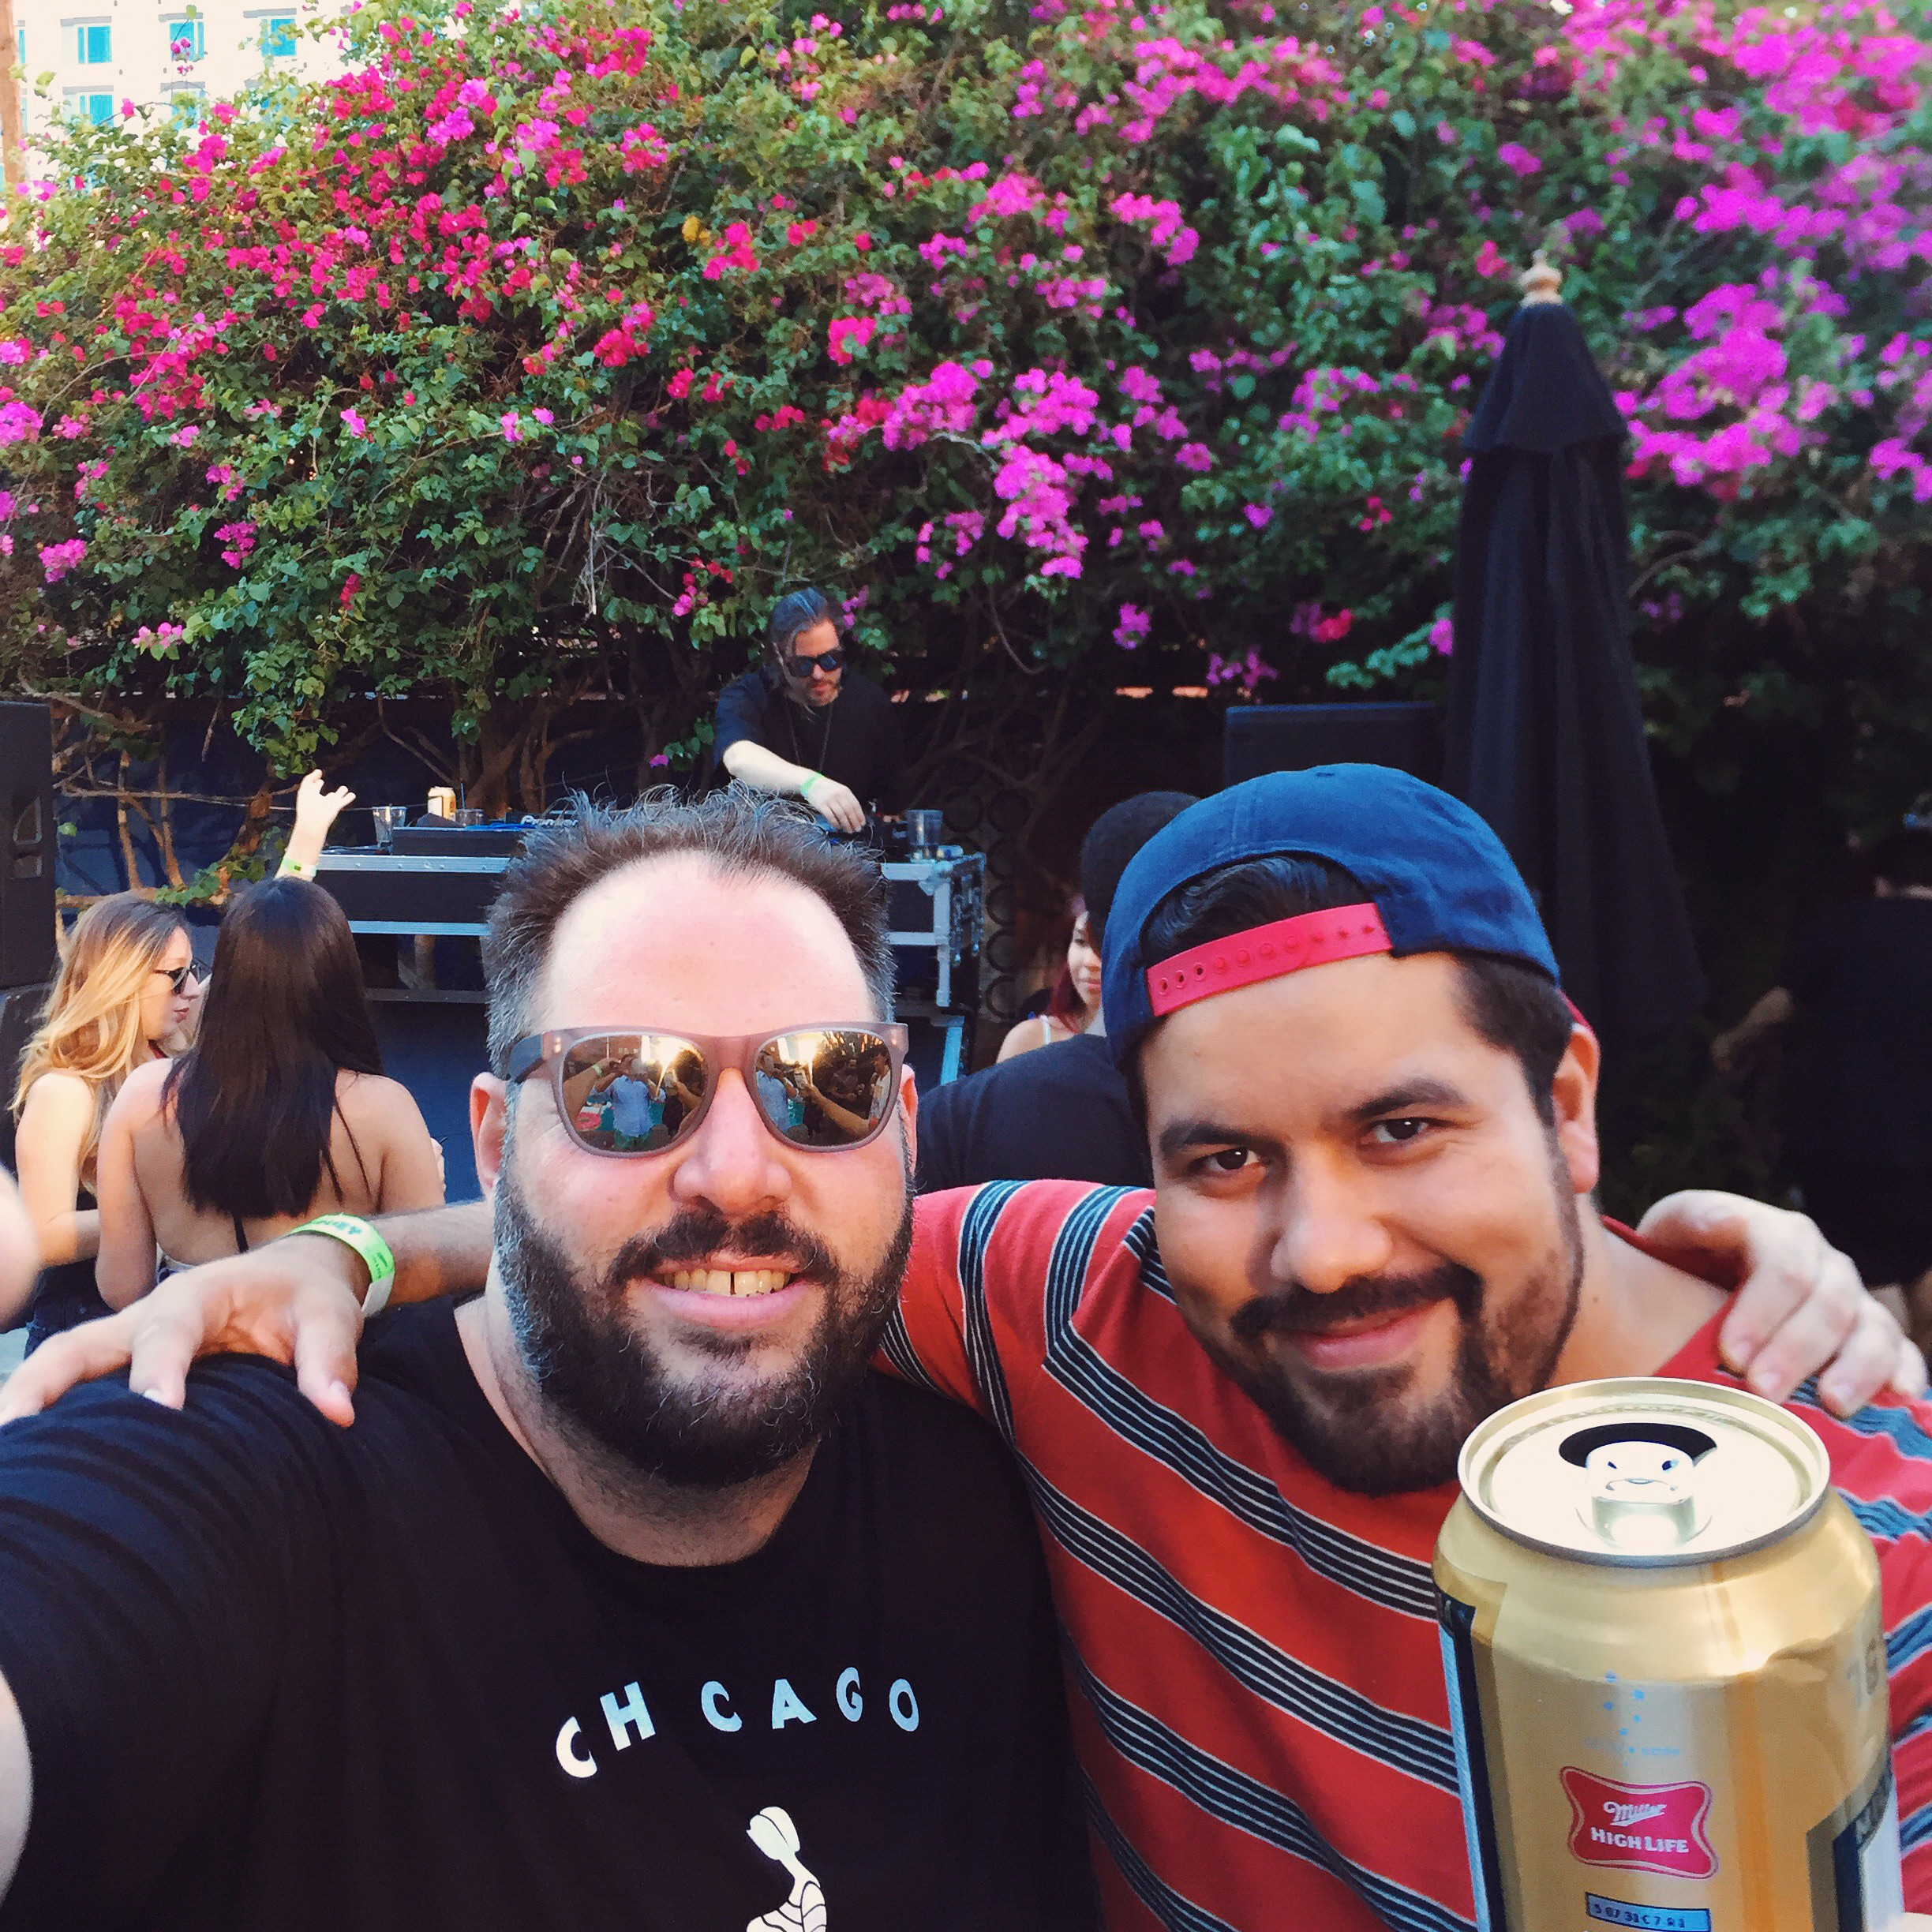 Thee Mike B at the Wavey pool party at Hotel Figueroa.